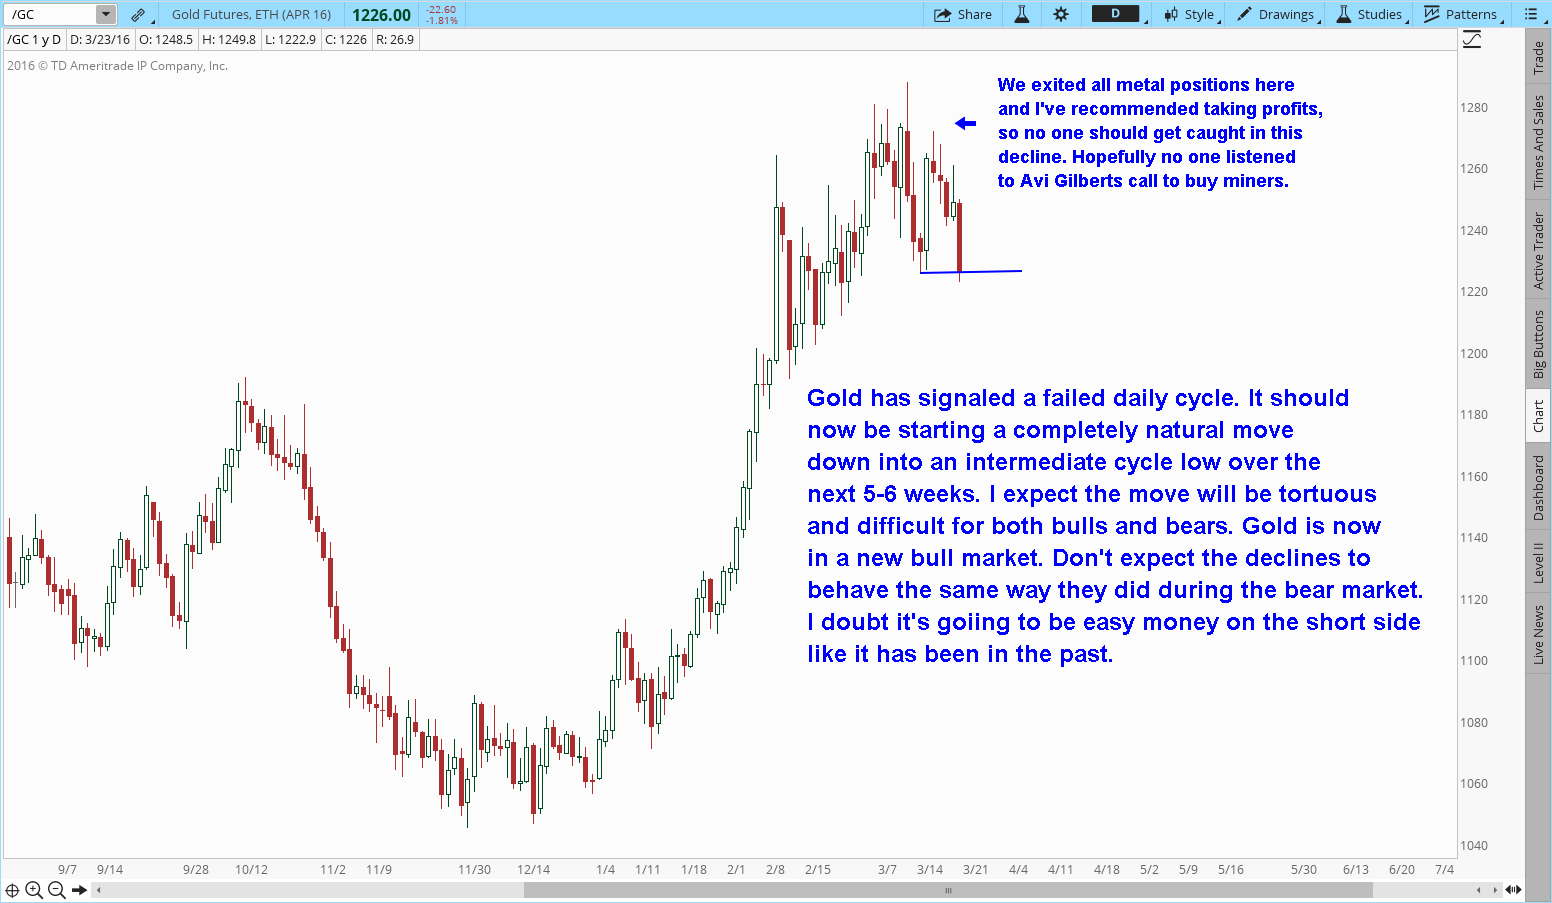 Gold's Failed Daily Cycle